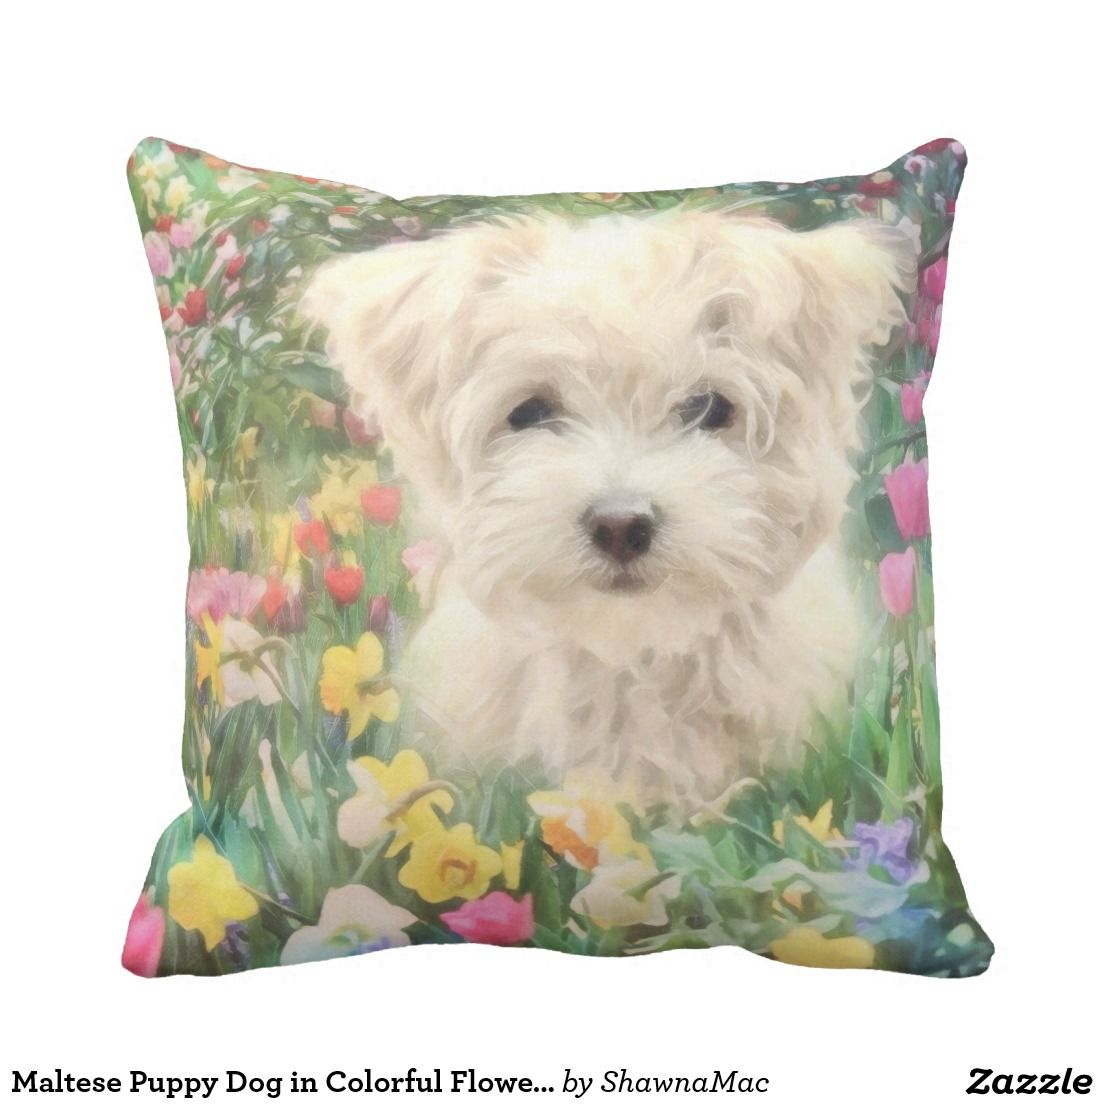 Maltese Puppy Dog in Colorful Flowers Pillows Puppy